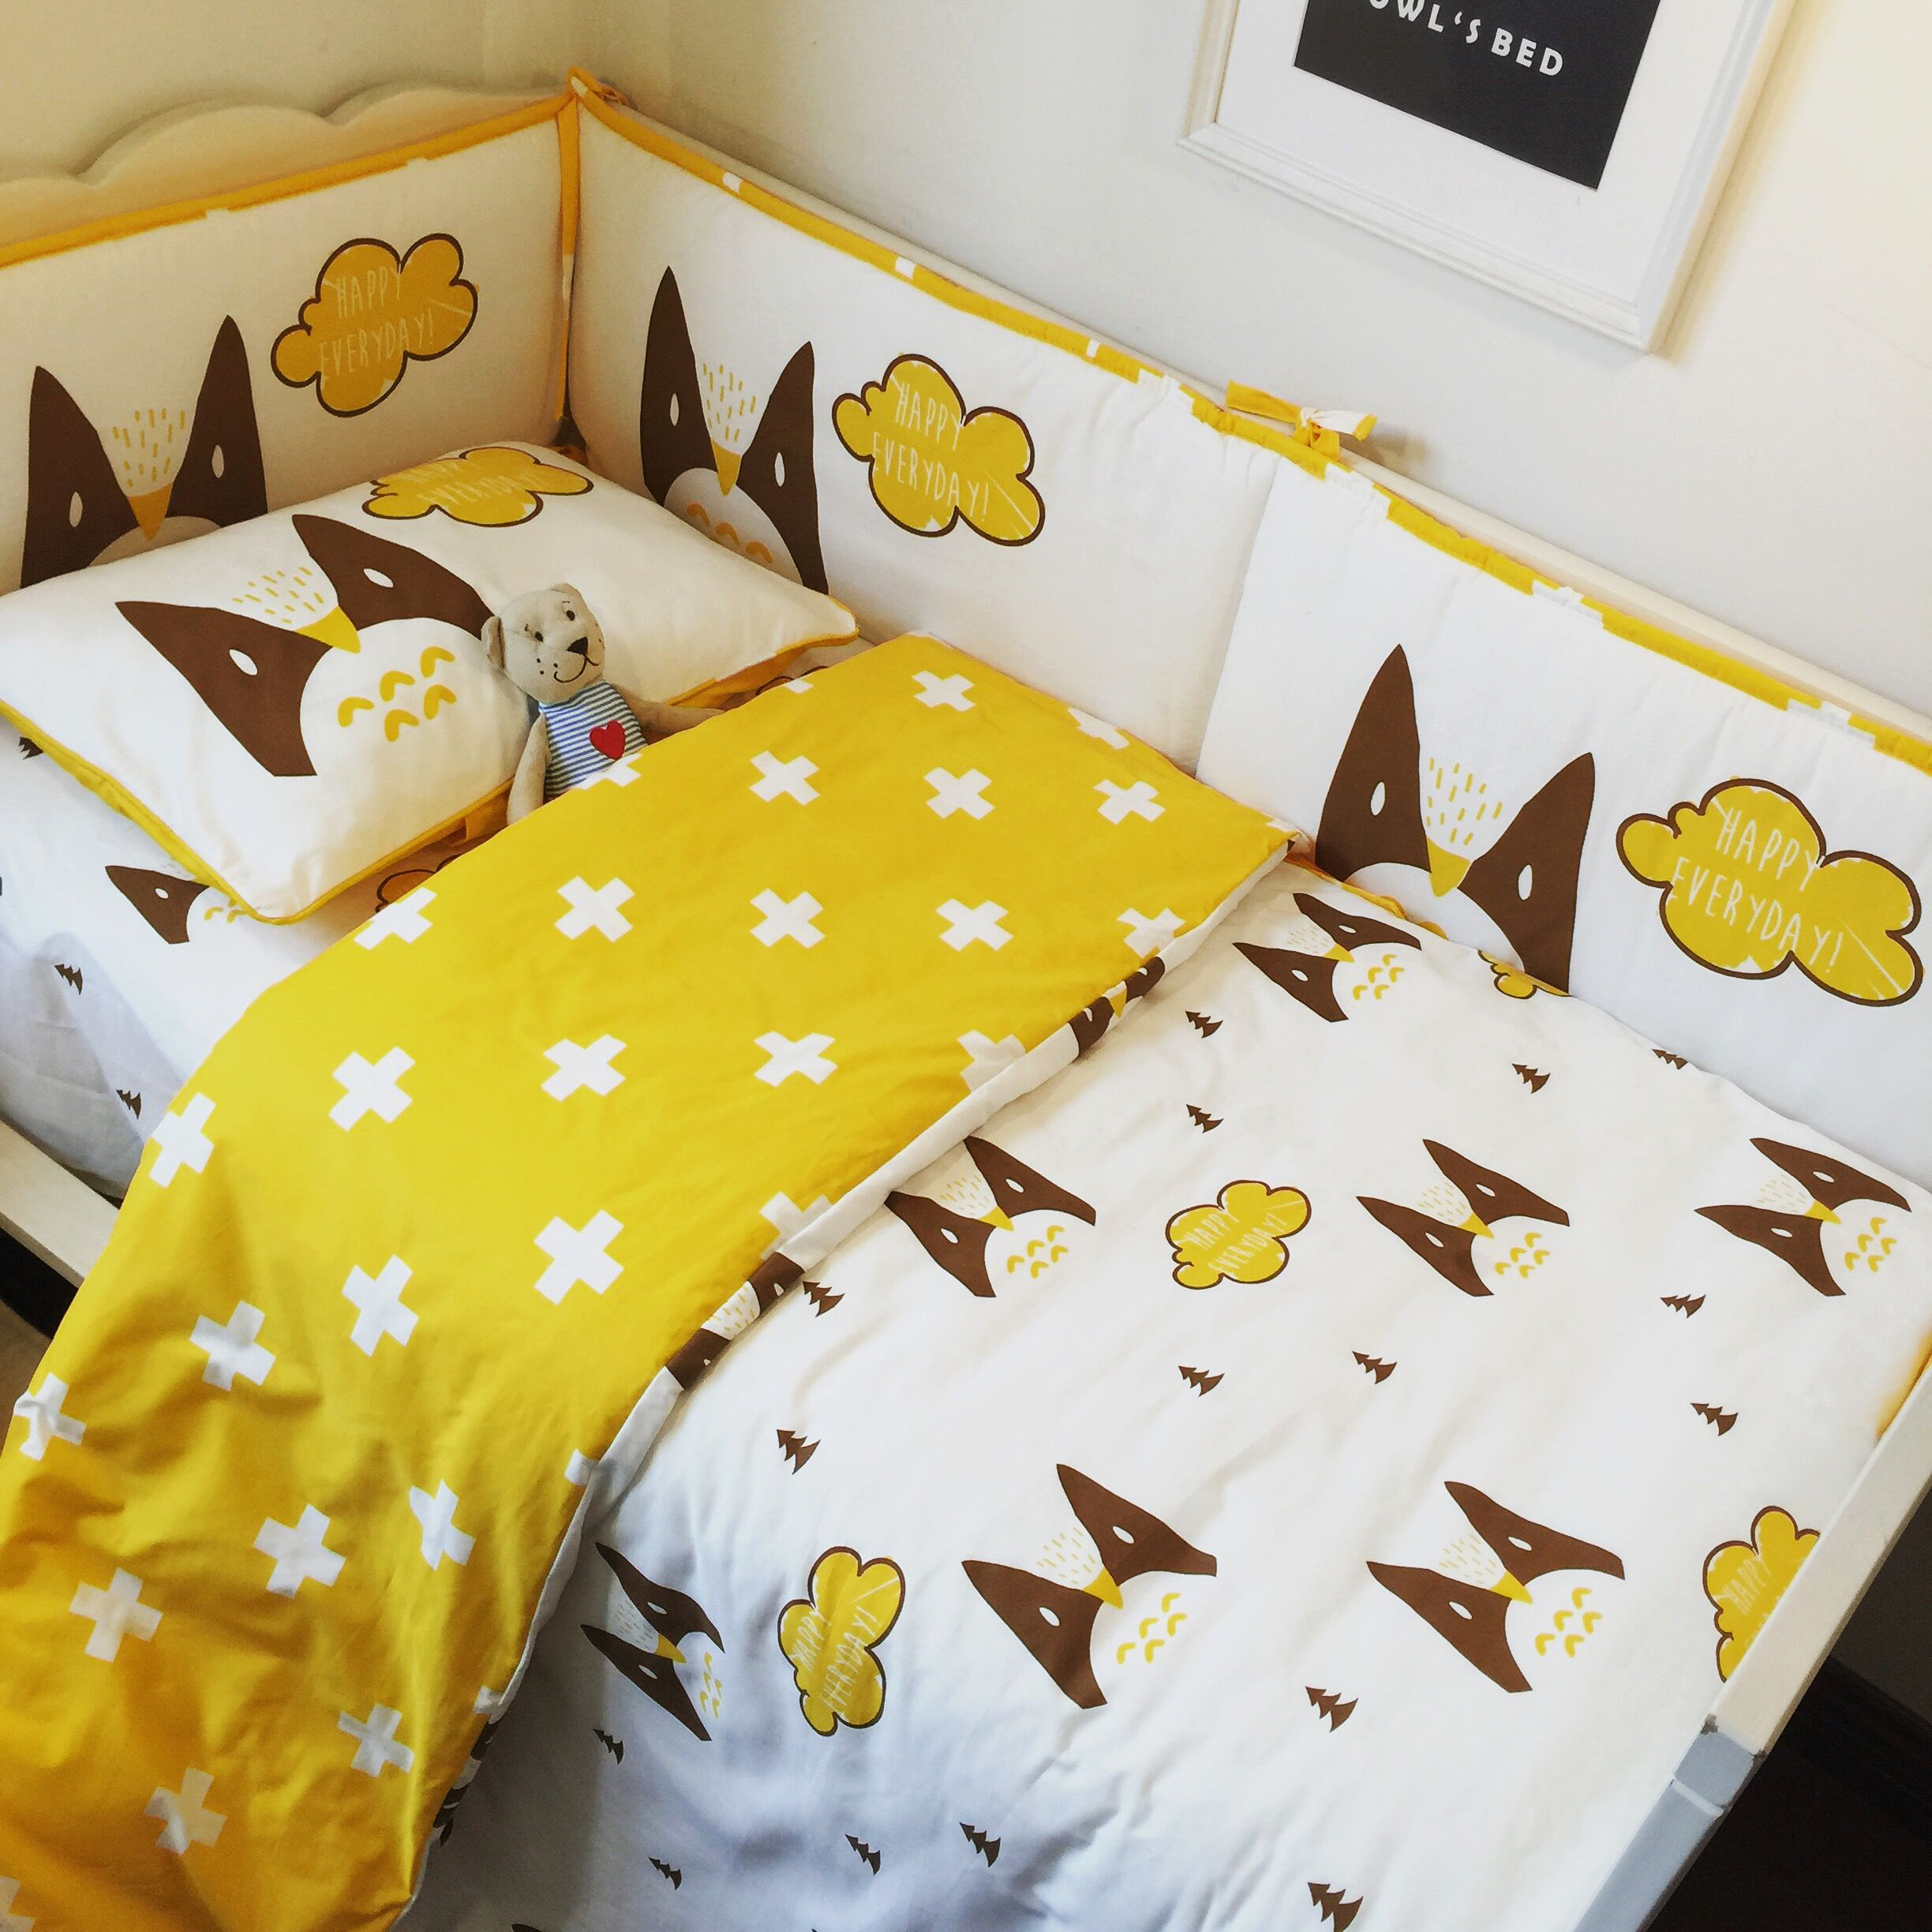 Baby quilts bed covers - Baby Bedding Sets 3pcs Cute No Stimulation Cotton Cartoon Pattern Baby Quilt Bed Sheets Pillowcase Bedding